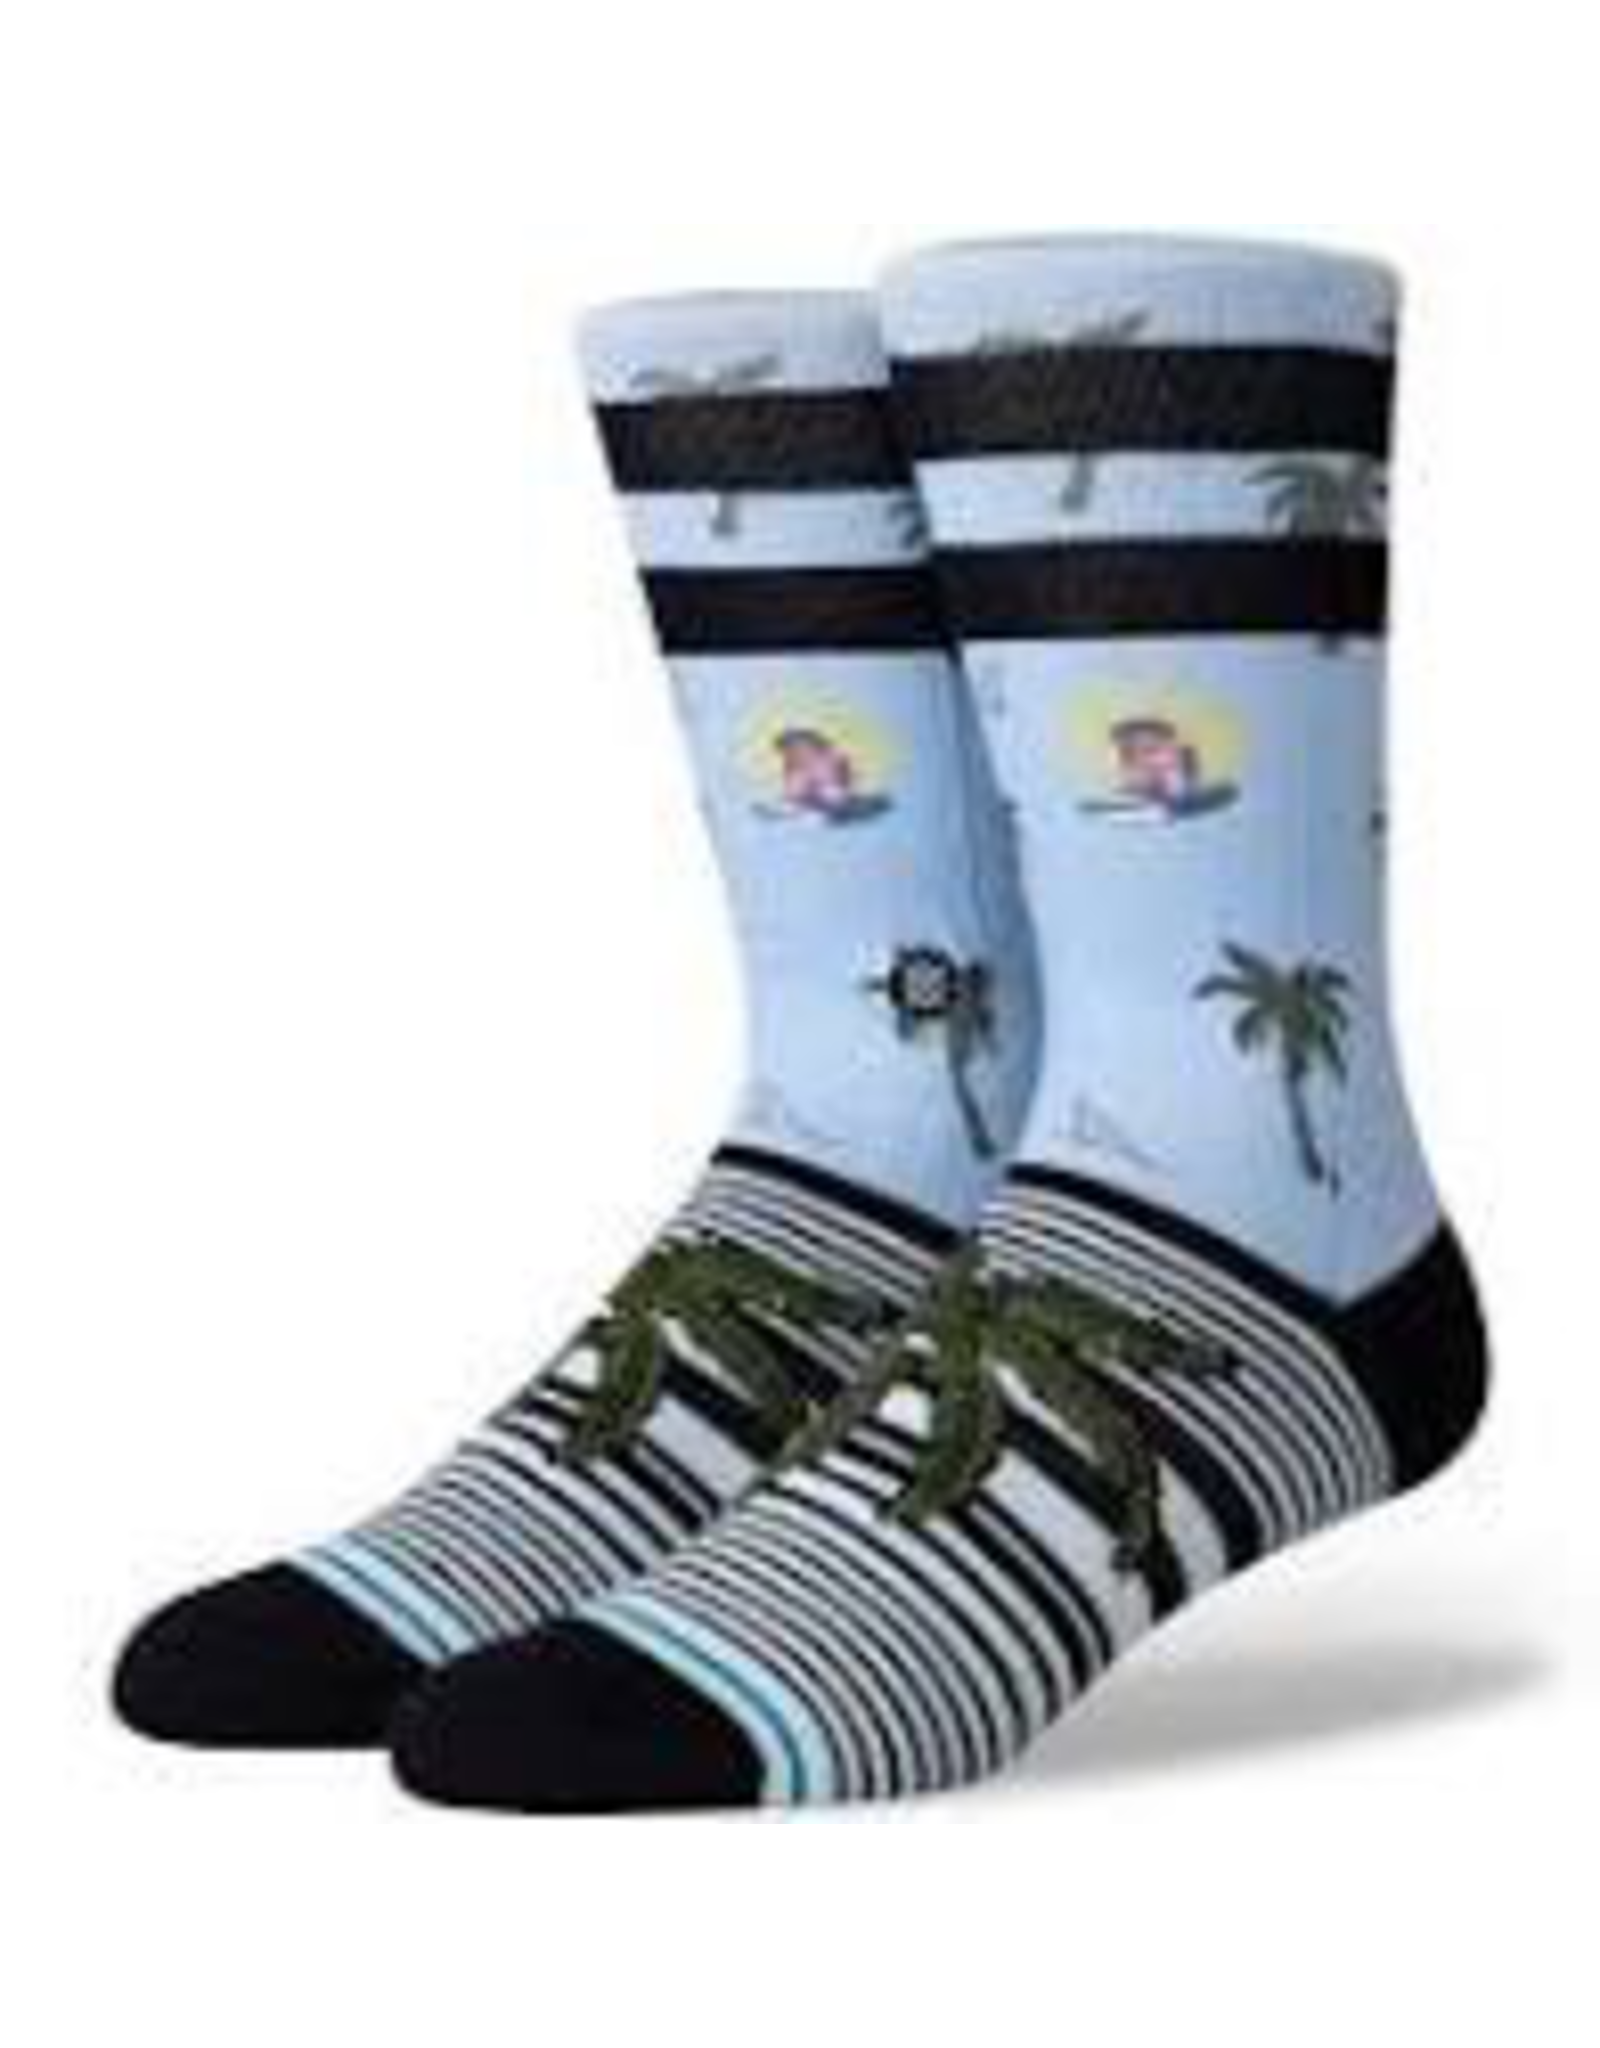 STANCE Aloha Monkey Crew Socks by Stance.<br /> Size Large fits men's shoe size 9 - 12 US.<br /> Terry loop in forefoot, heel, and toe for medium cushion.<br /> Seamless toe closure.<br /> Athletic ribbed.<br /> Signature Stance logo embroidered on the ankle.<br /> Reinforced heel and toe.<br /> Arch su